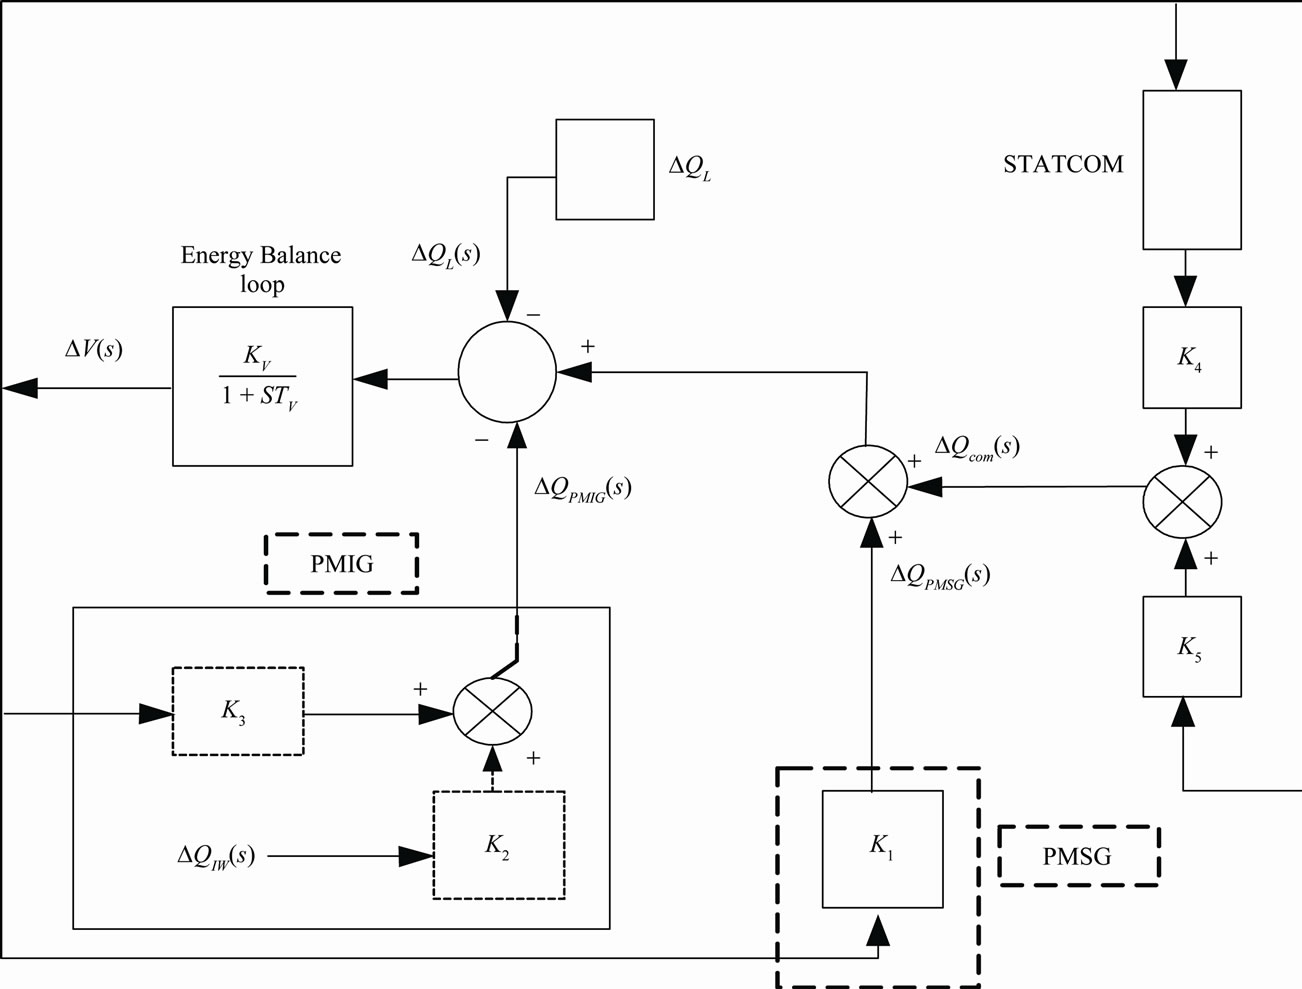 Performance Of A Wind Diesel Hybrid Power System With Statcom As Diagram Reactive Compensator